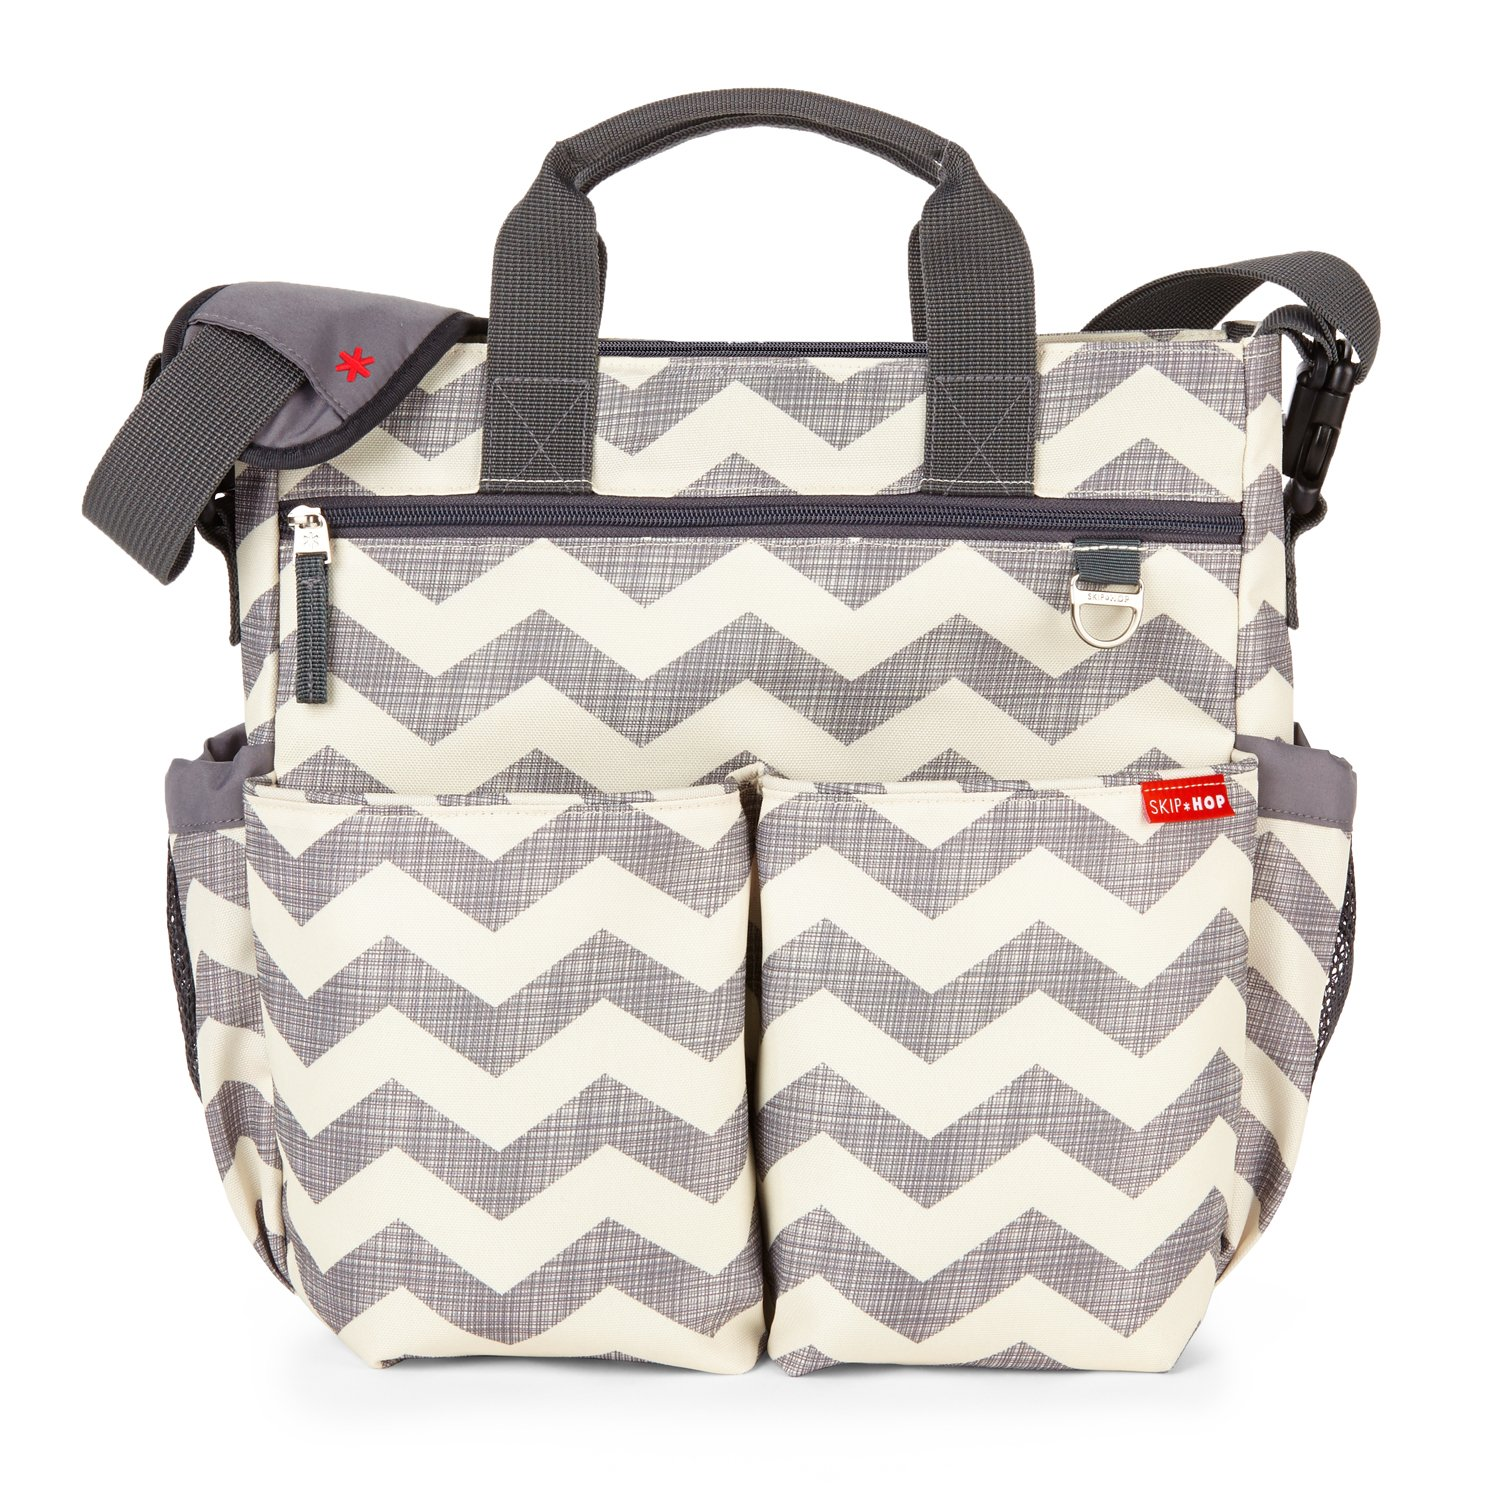 Skip Hop Messenger Diaper Bag with Matching Changing Pad, Duo Signature, Chevron by Skip Hop